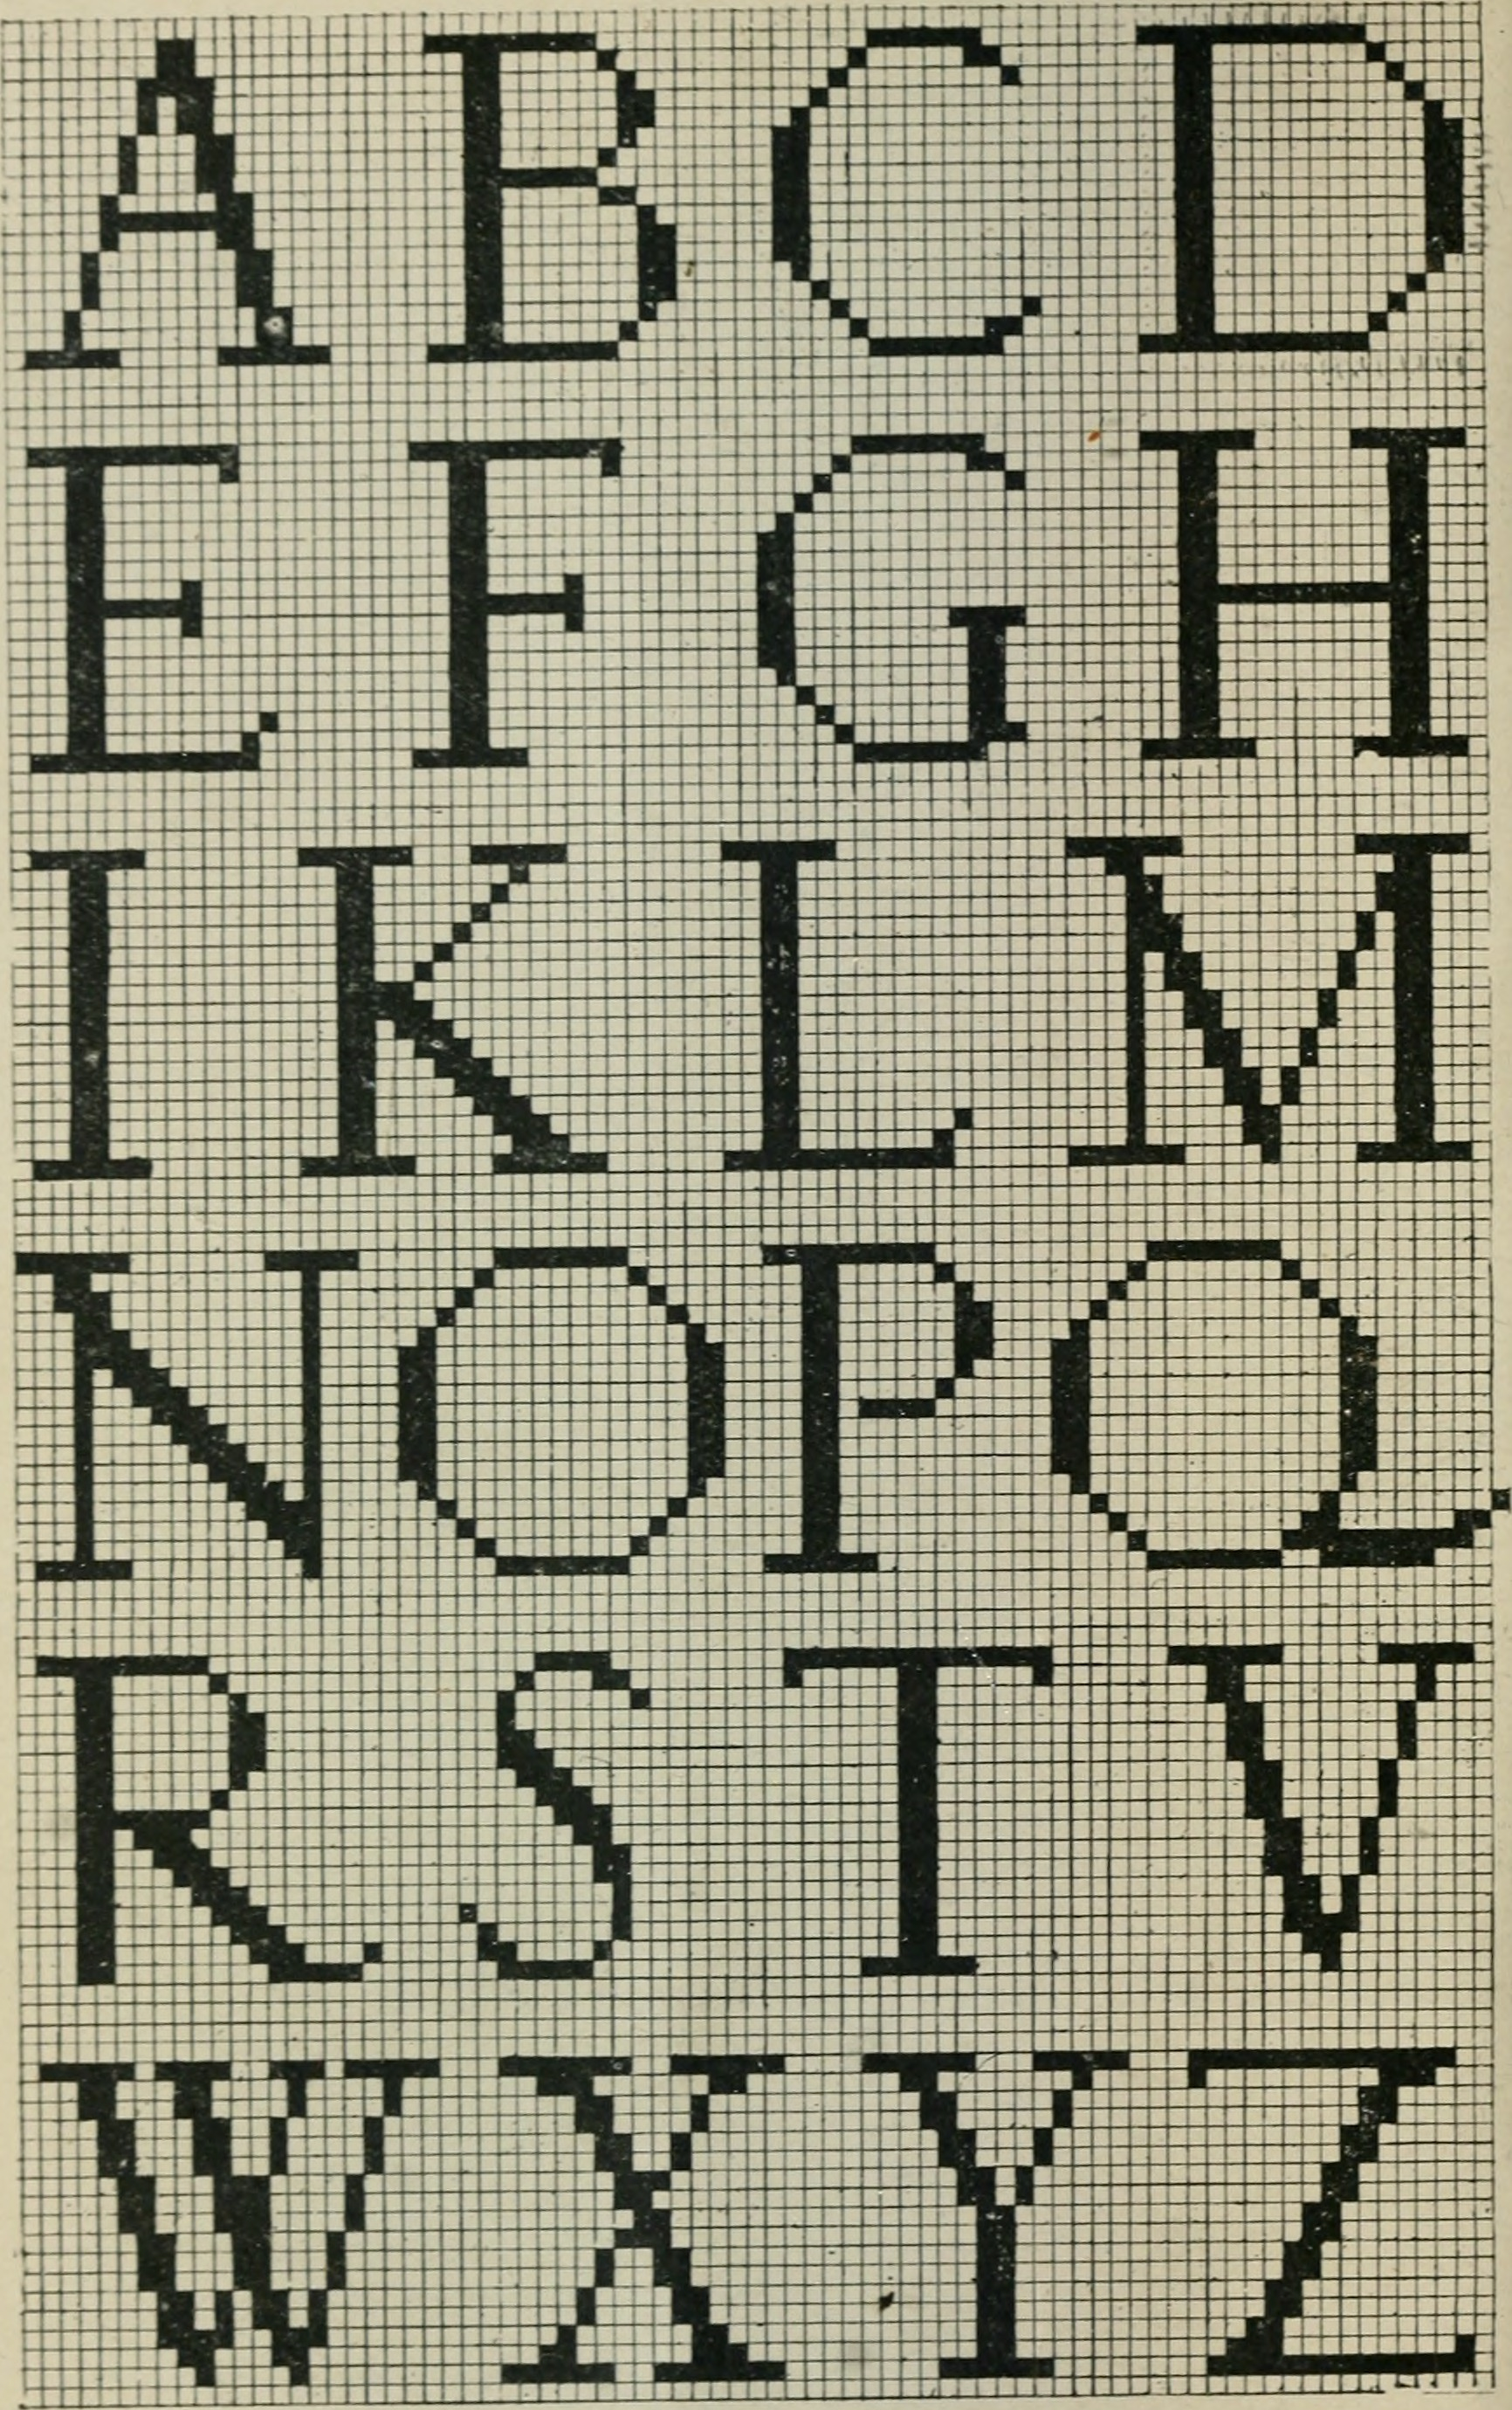 external image Alphabets_old_and_new%2C_for_the_use_of_craftsmen_-_with_an_introductory_essay_on_Art_in_the_alphabet_%281898%29_%2814785844713%29.jpg